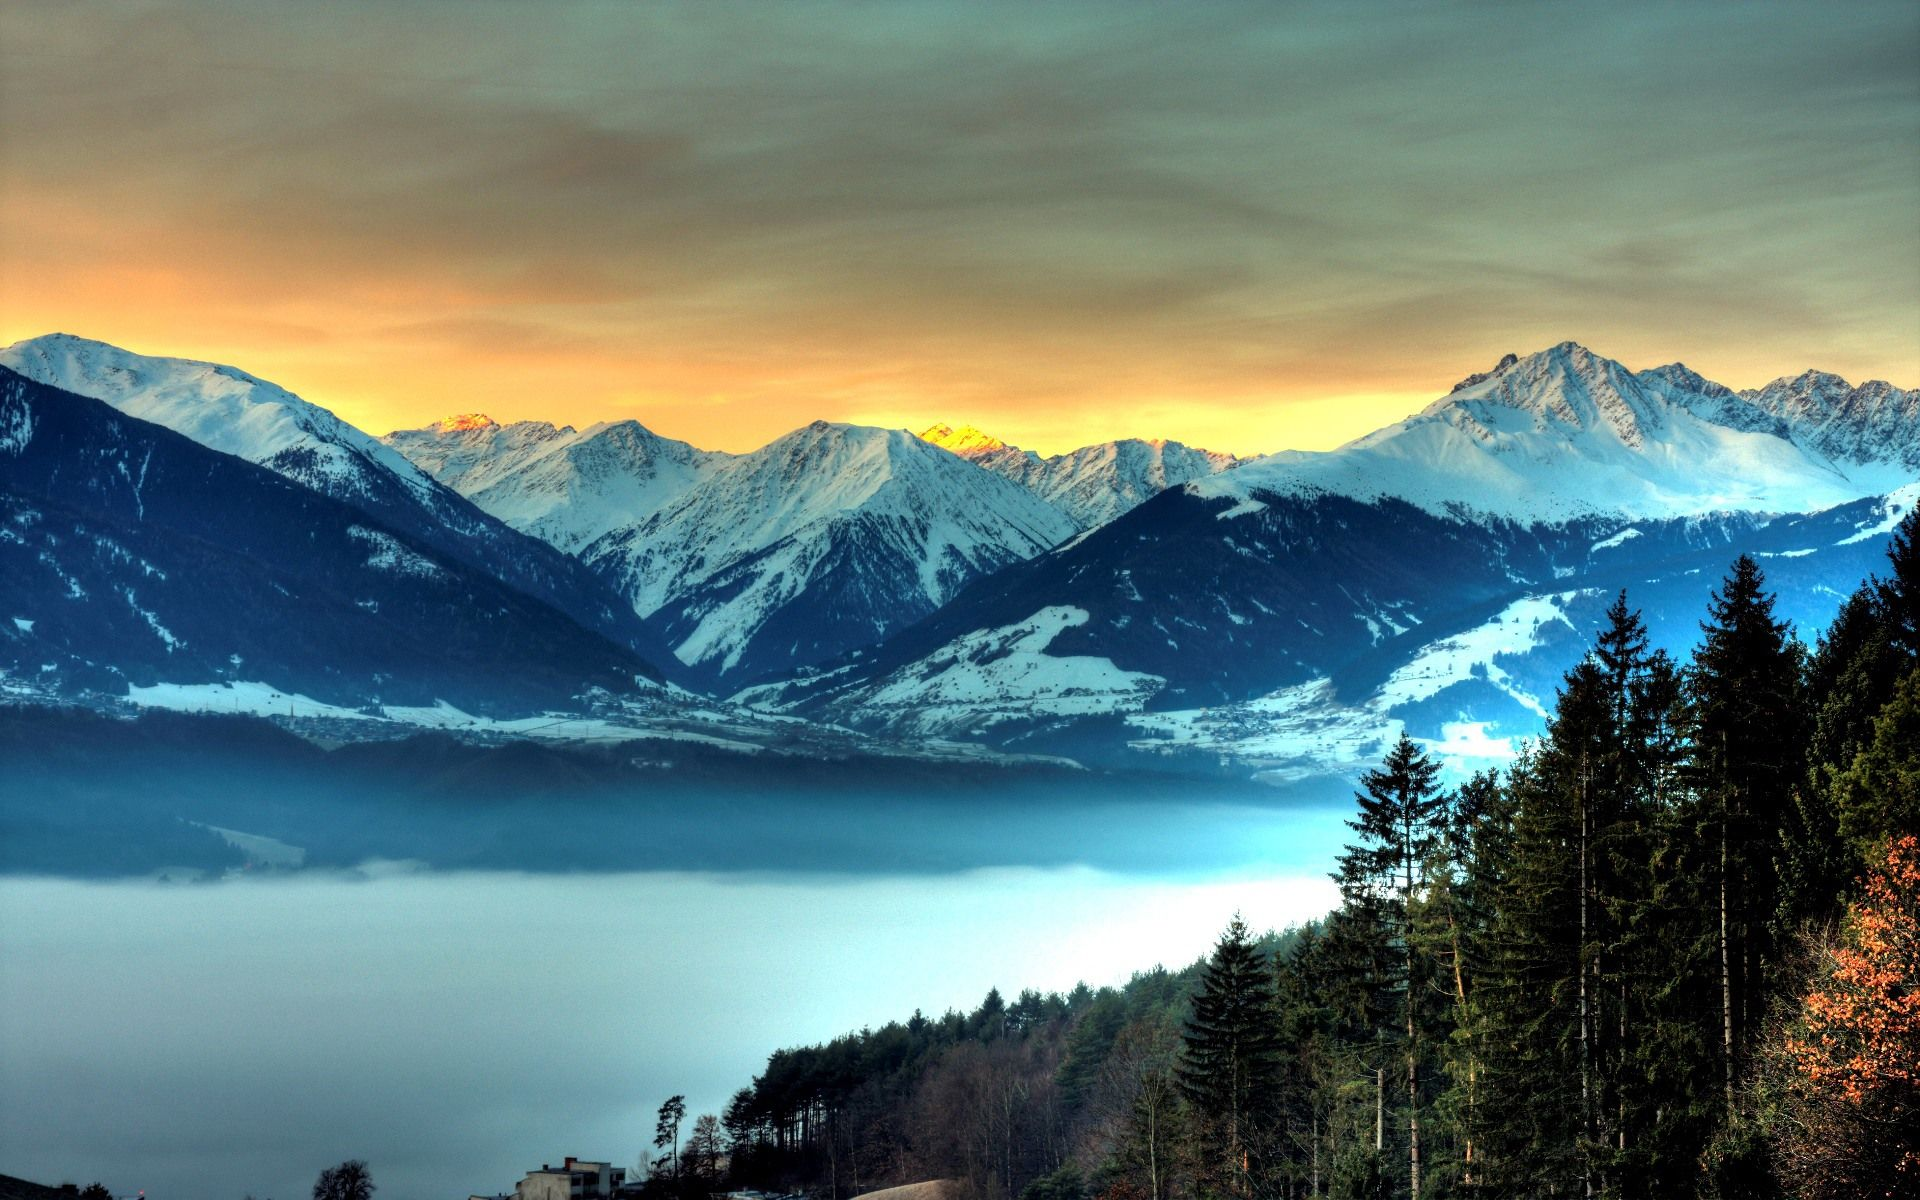 Windows 7 Desktop Backgrounds Mountains Need travel tips